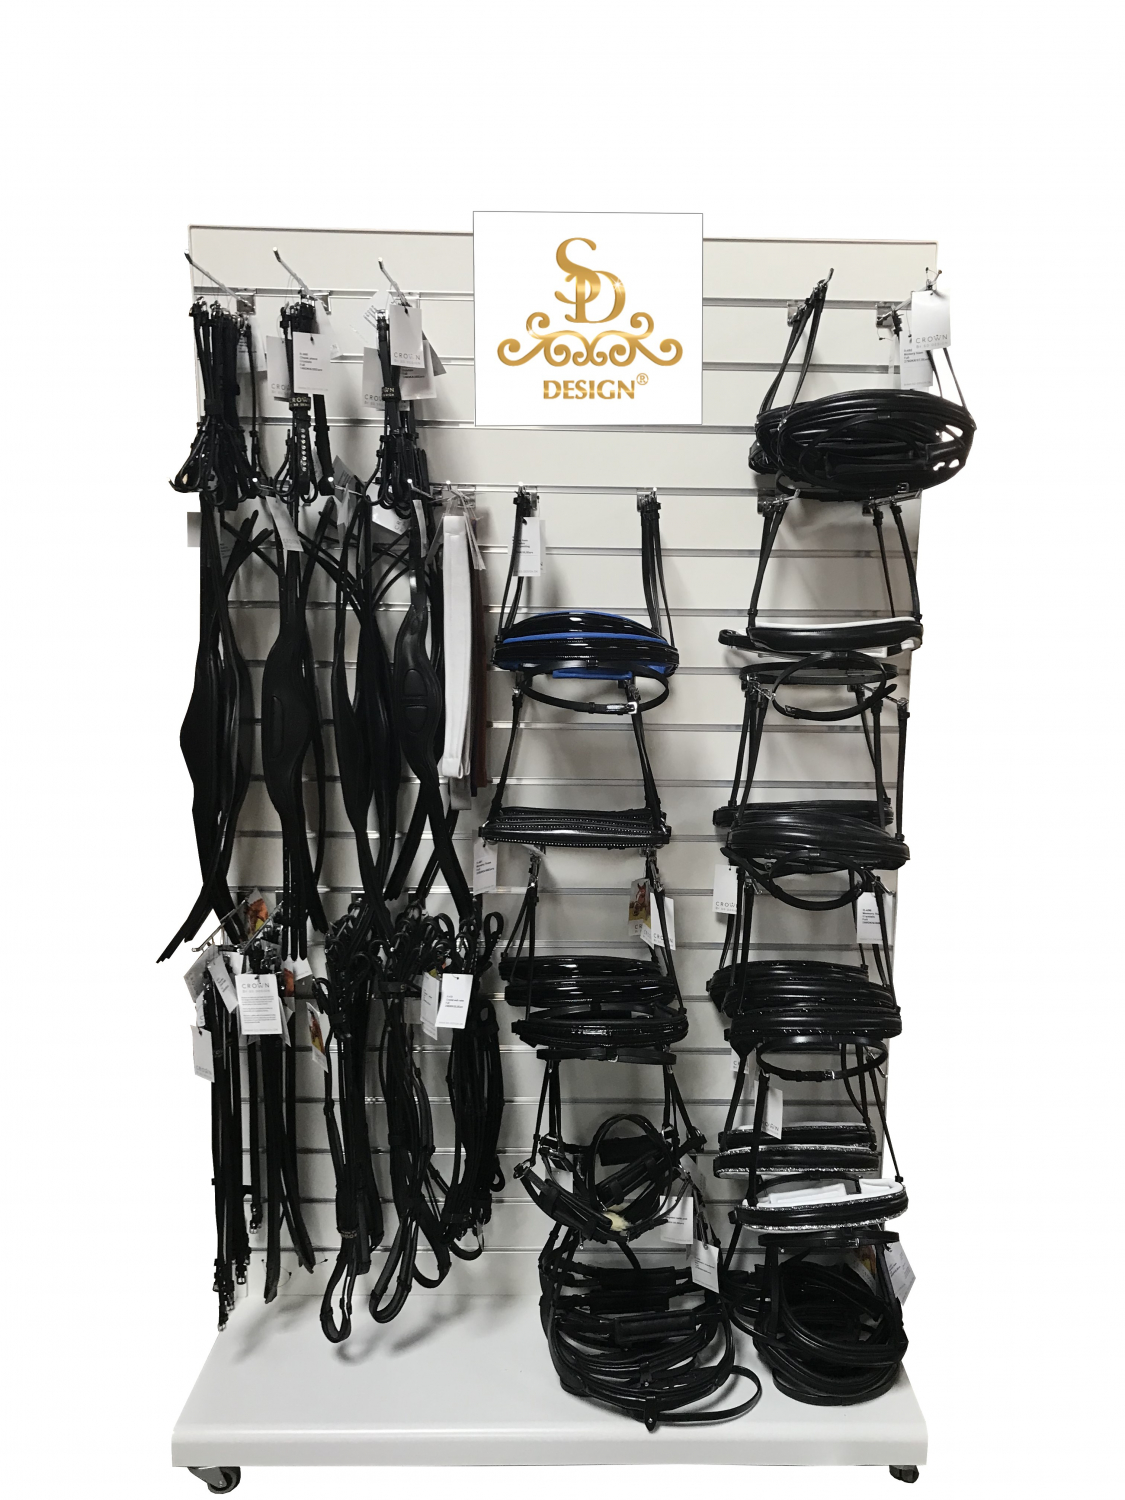 SD Customized bridles